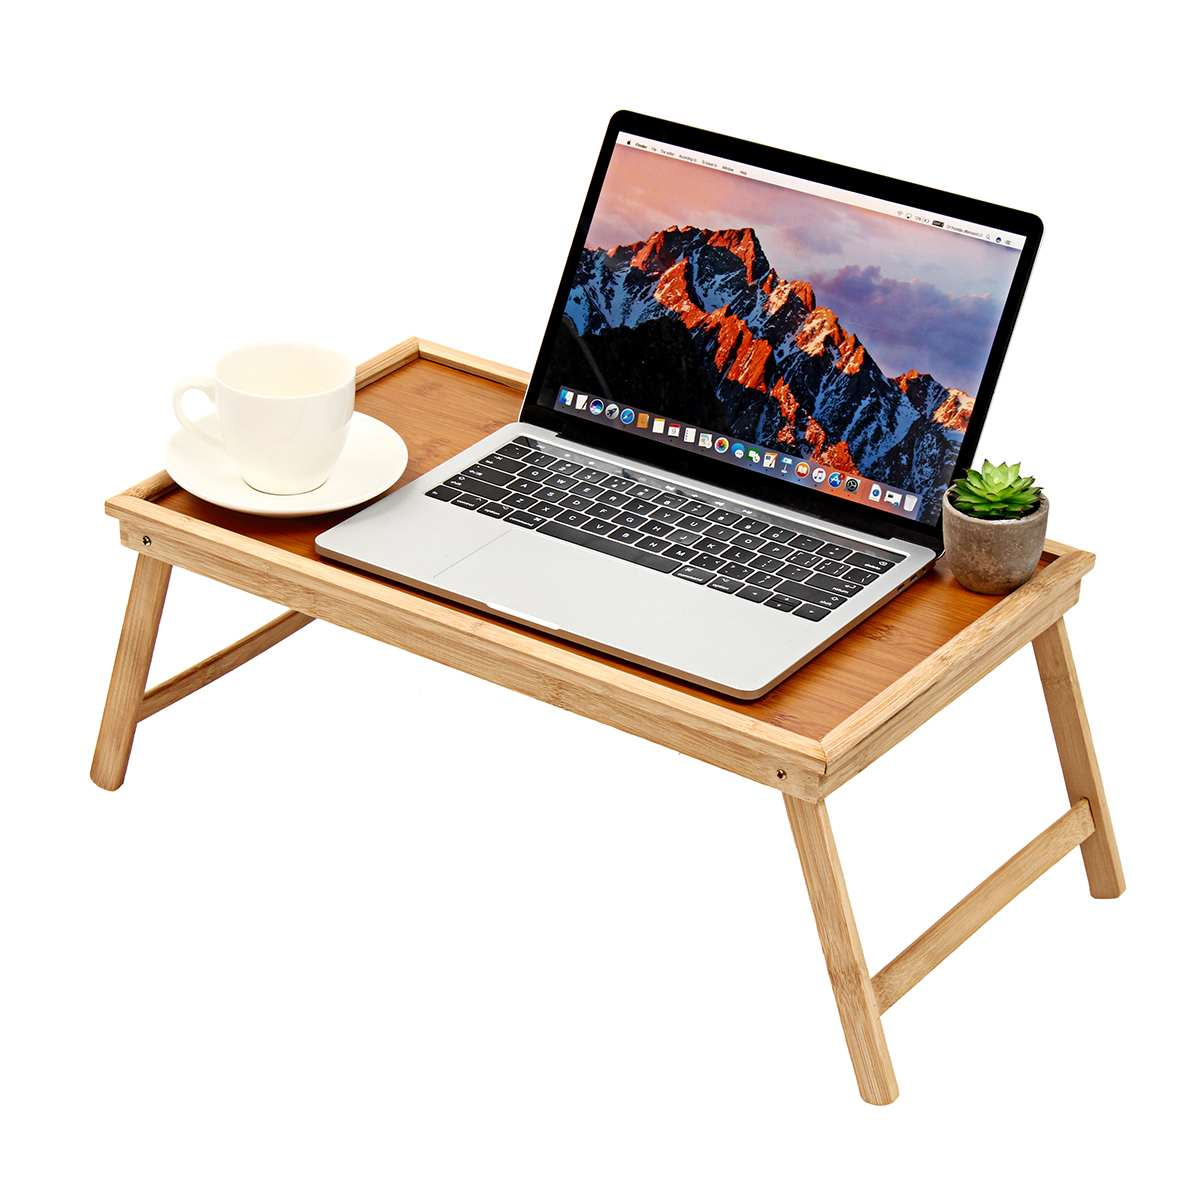 Portable 20 Bamboo Laptop Desk Bed Serving Tray Notebook Table Holder Computer Desks Student Home Office Furniture FoldablePortable 20 Bamboo Laptop Desk Bed Serving Tray Notebook Table Holder Computer Desks Student Home Office Furniture Foldable